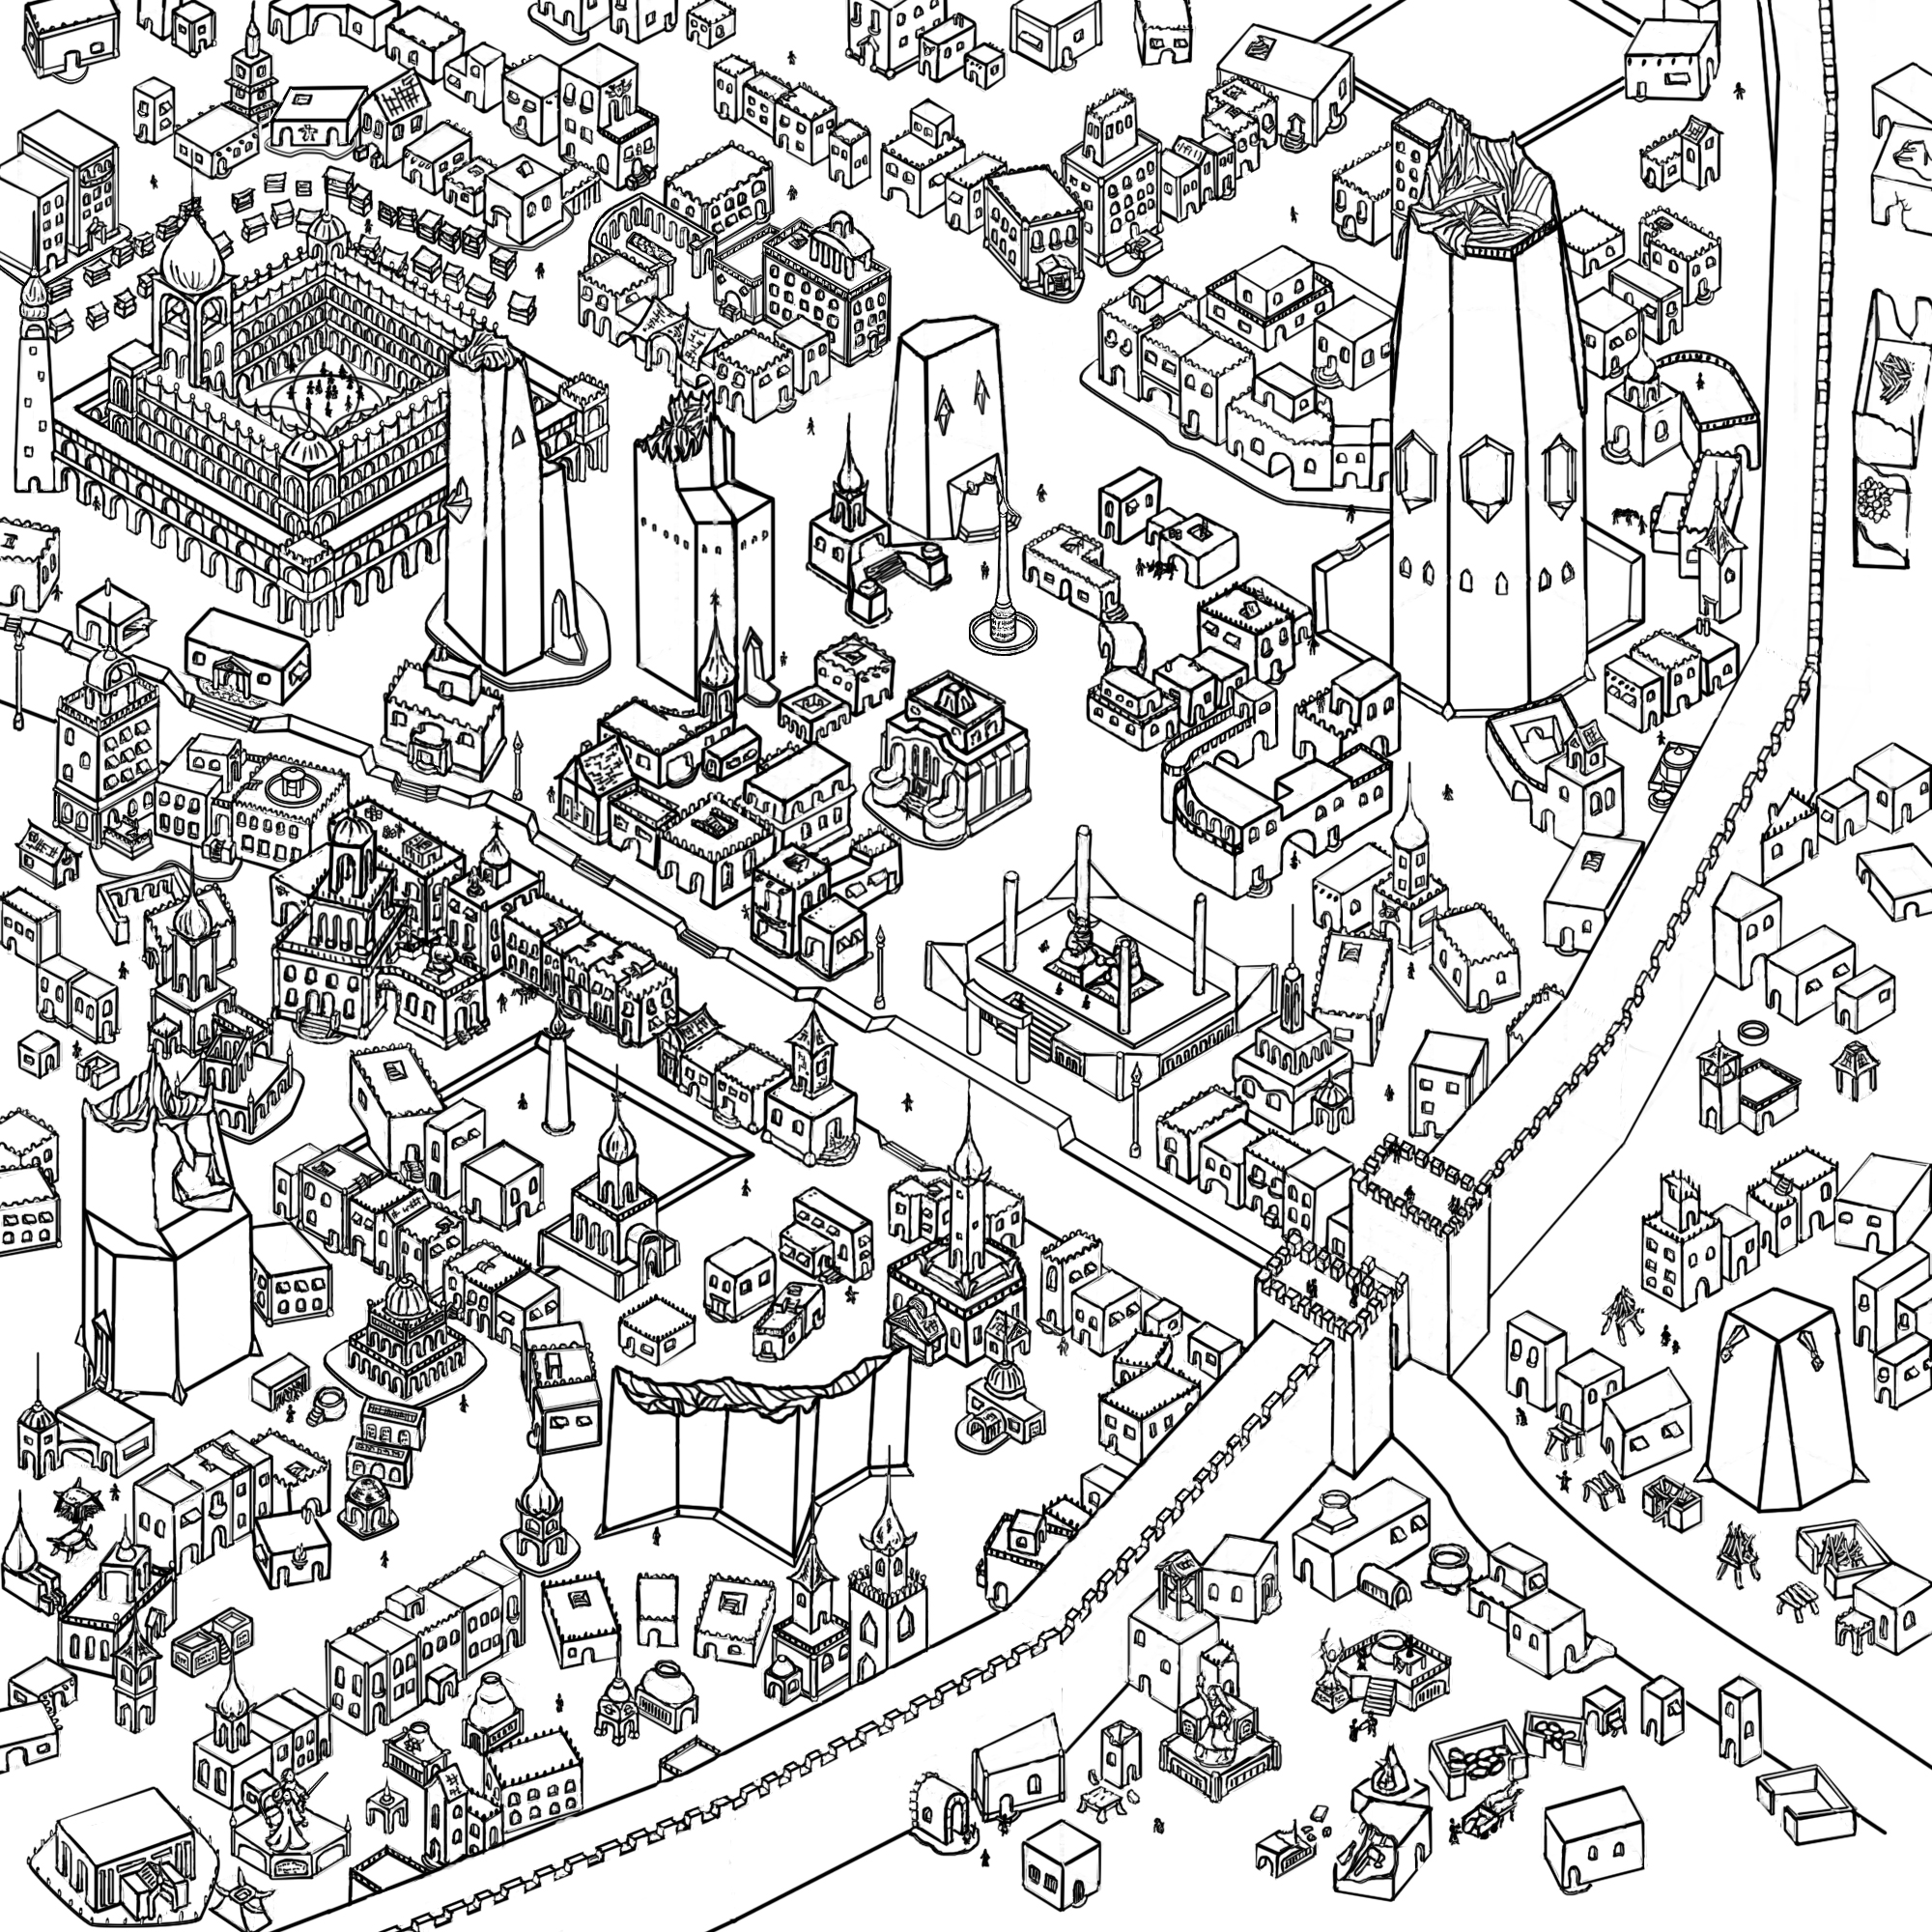 Completed the drawing of all the buildings.  Took me quite some time.  Now it is time to add little details as I go along, and to also color this map.